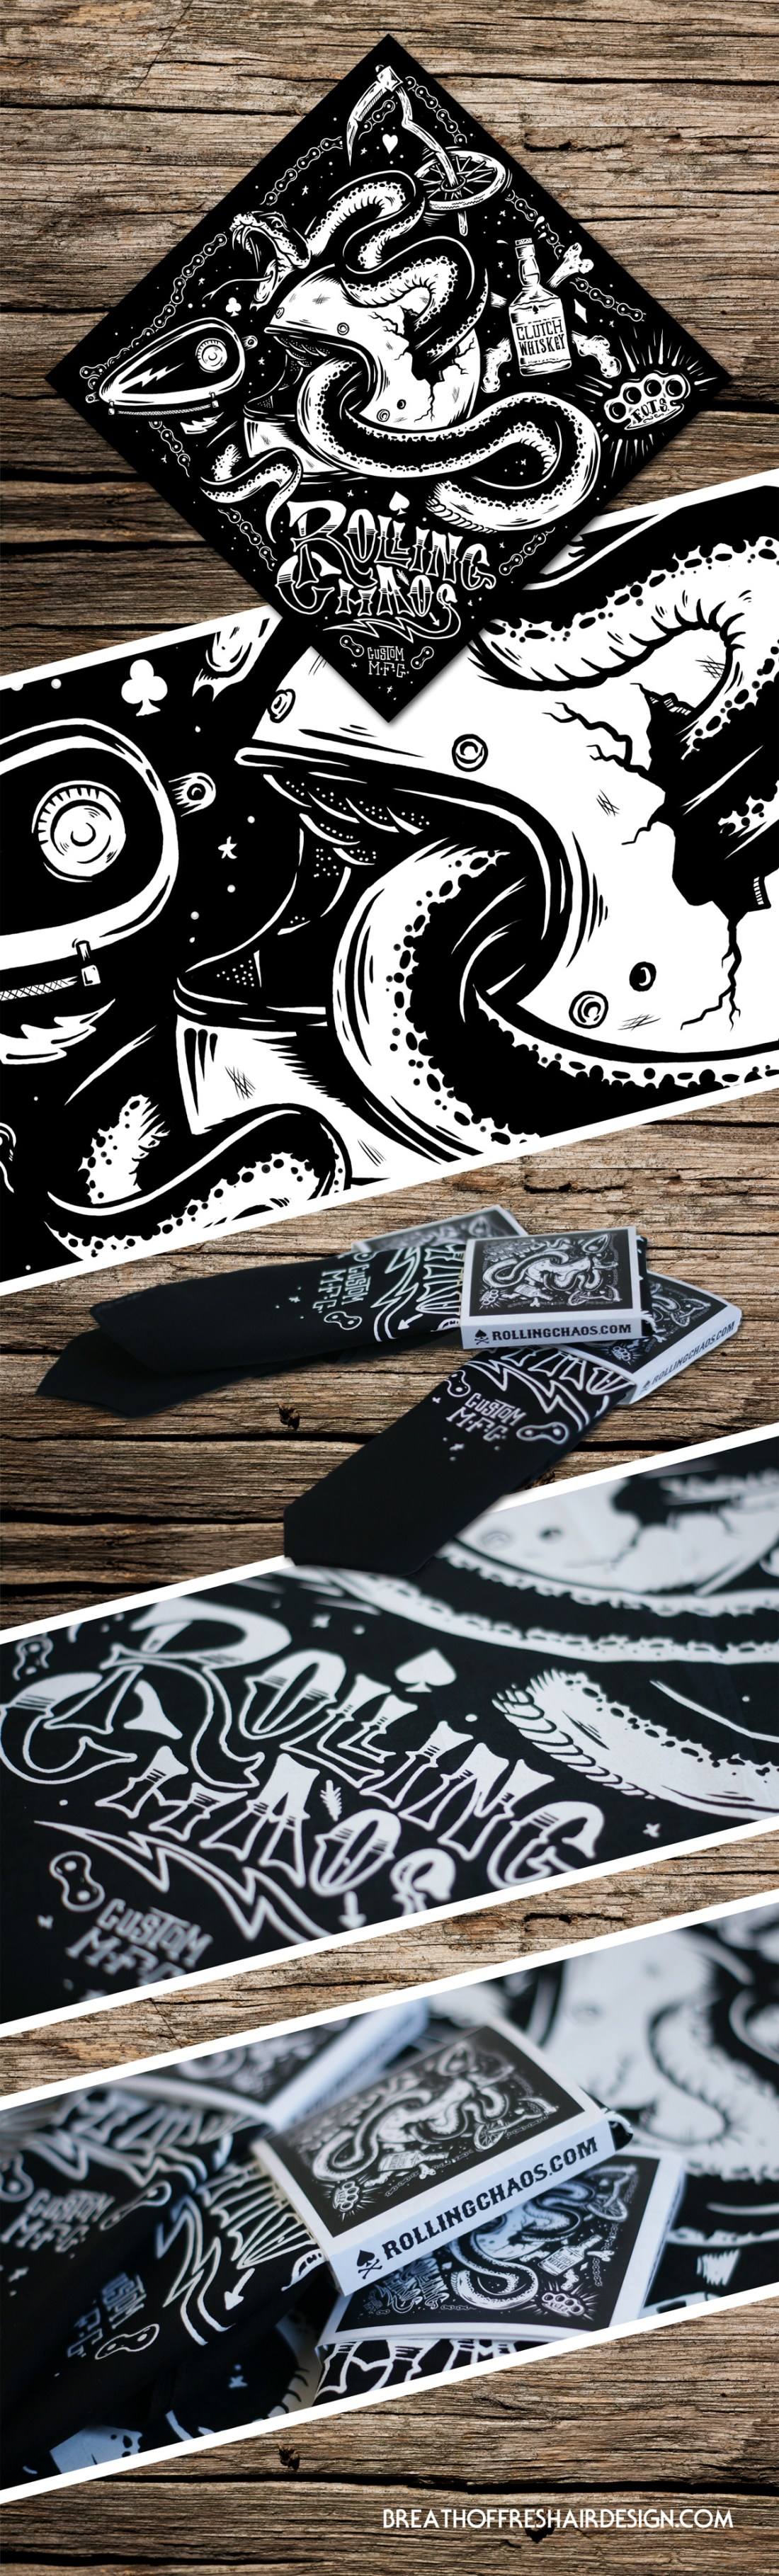 Rolling Chaos, Bandana, Fight Off The Snakes, Illustration, Graphic Design, Packaging, Helmet, Motorcycle, Chopper, Snake, Whiskey, Tank, Toronto